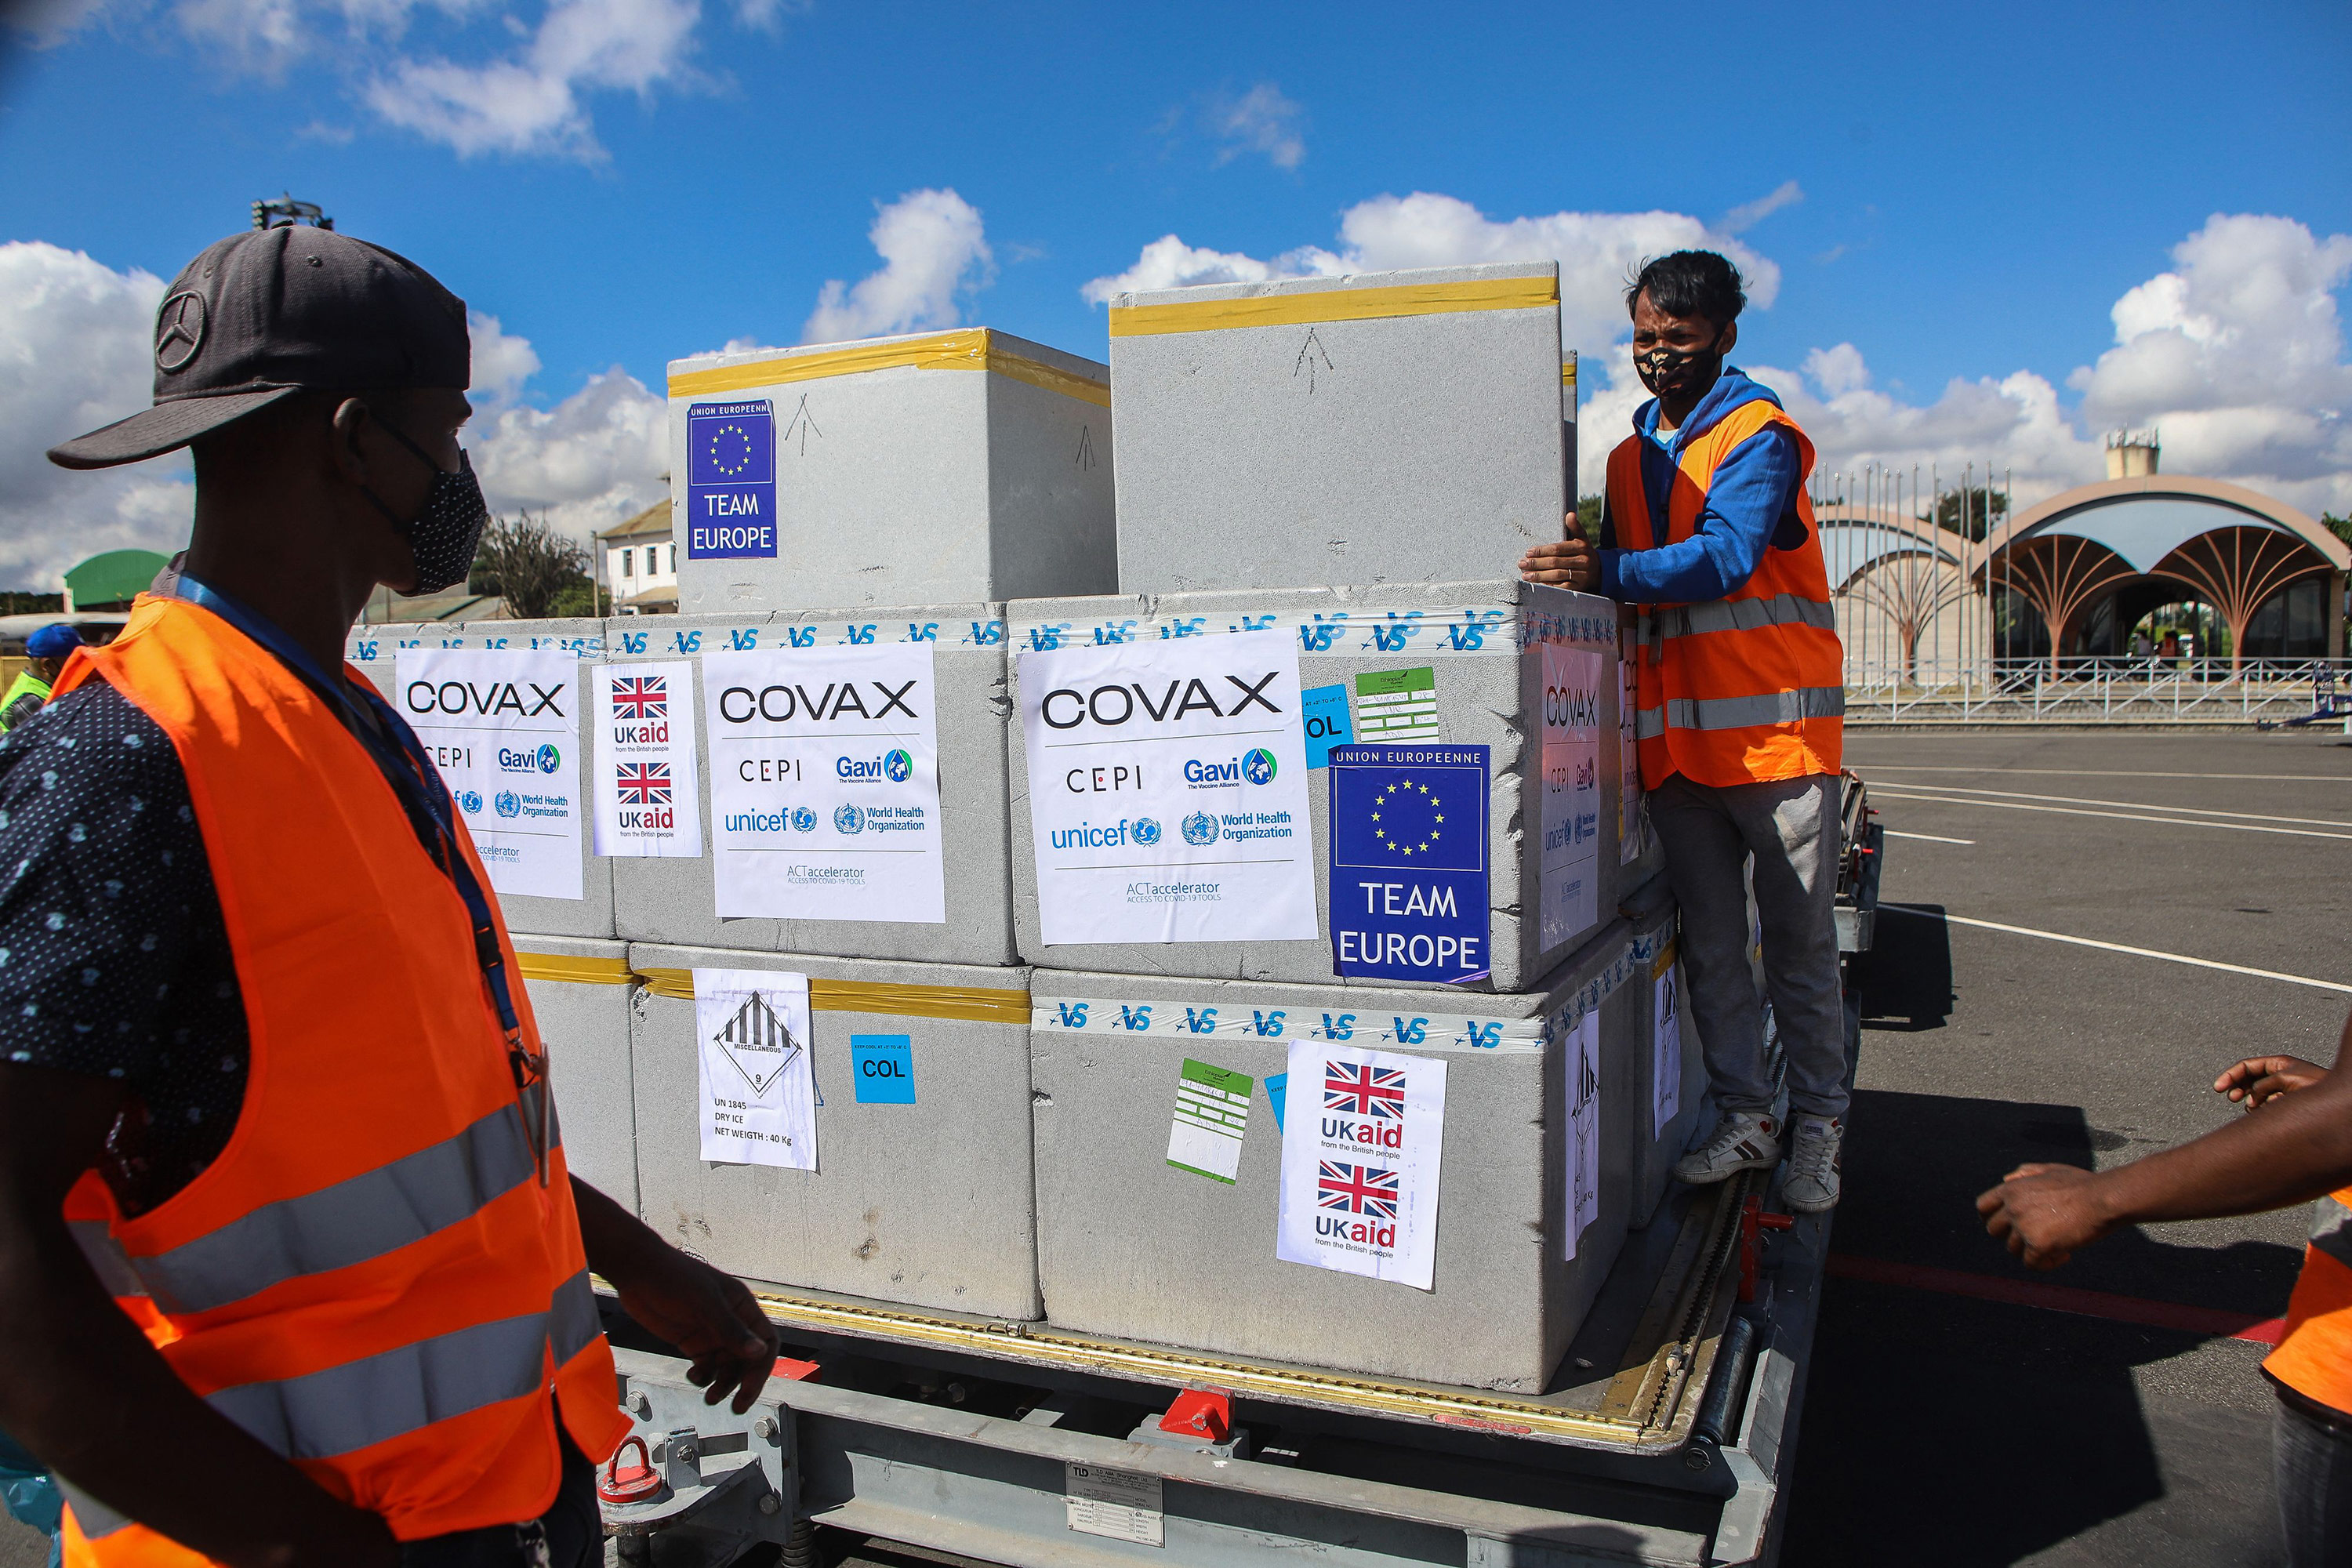 Workers handle boxes of COVAX Covid-19 vaccines at Ivato International Airport in Antananarivo, Madagascar, on May 8.